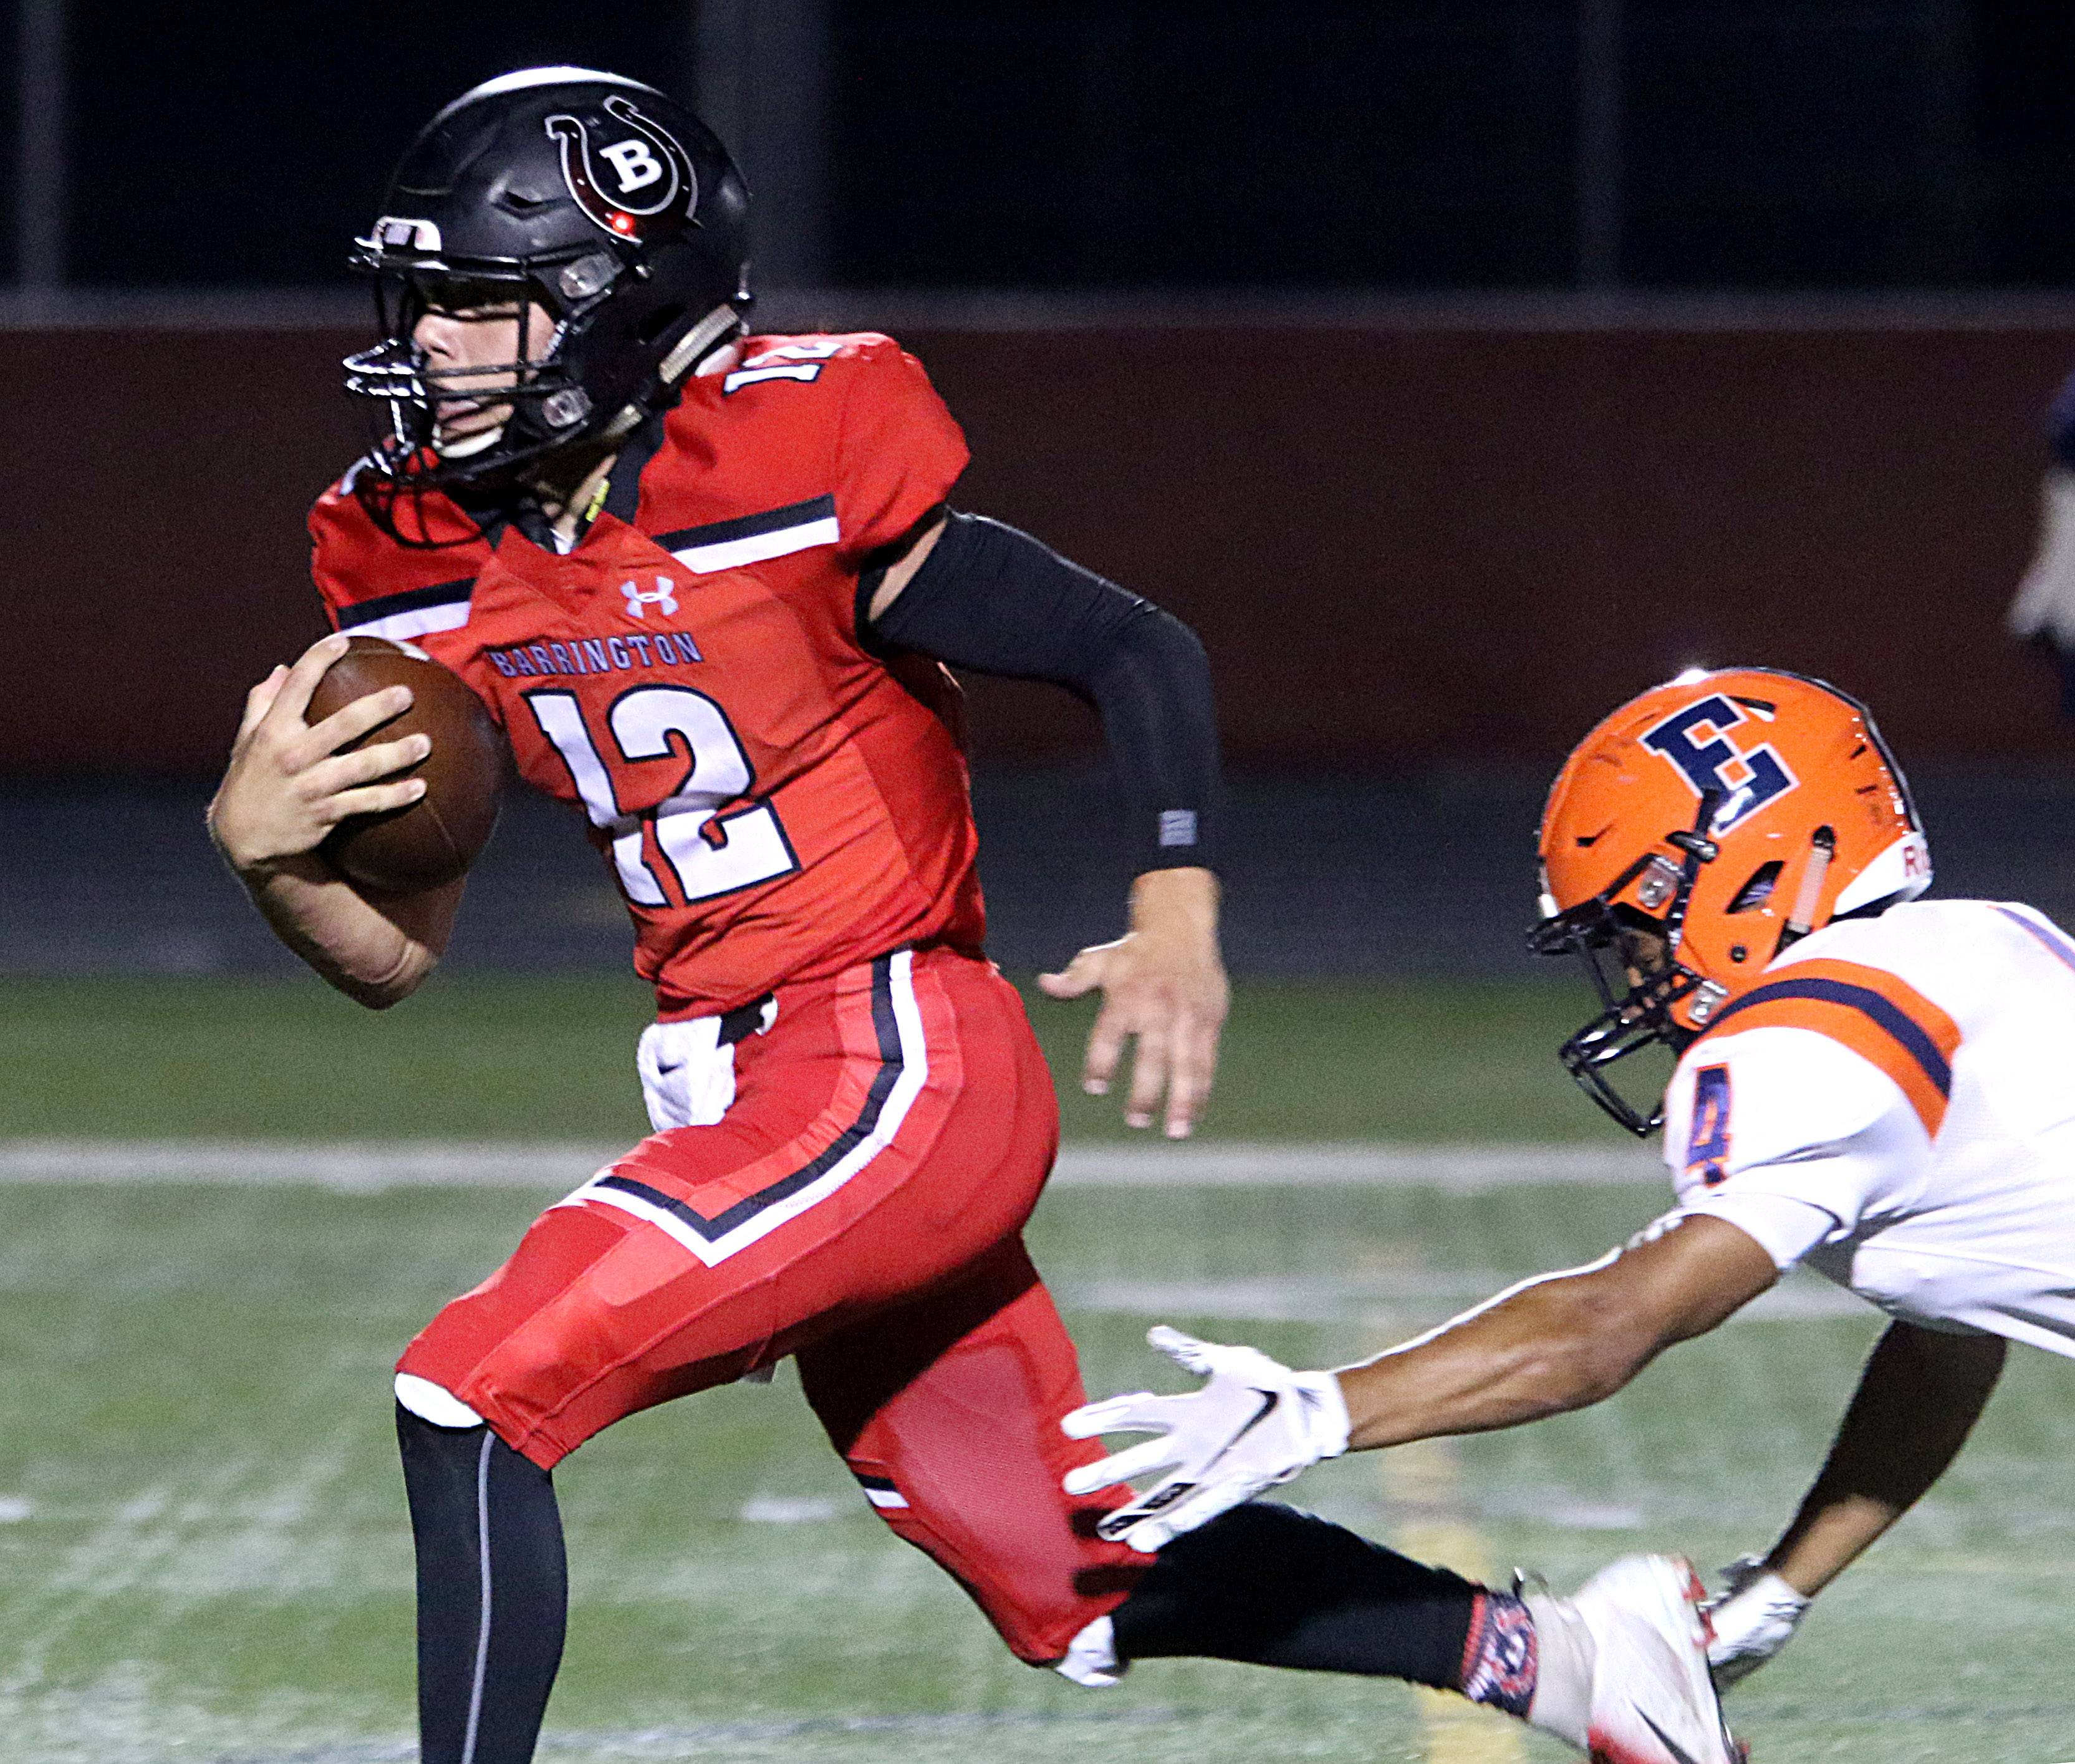 Barrington's Tommy Fitzpatrick runs in a first-quarter touchdown against Evanston earlier this season. Barrington will host Fremd Saturday afternoon in the Broncos' homecoming game.